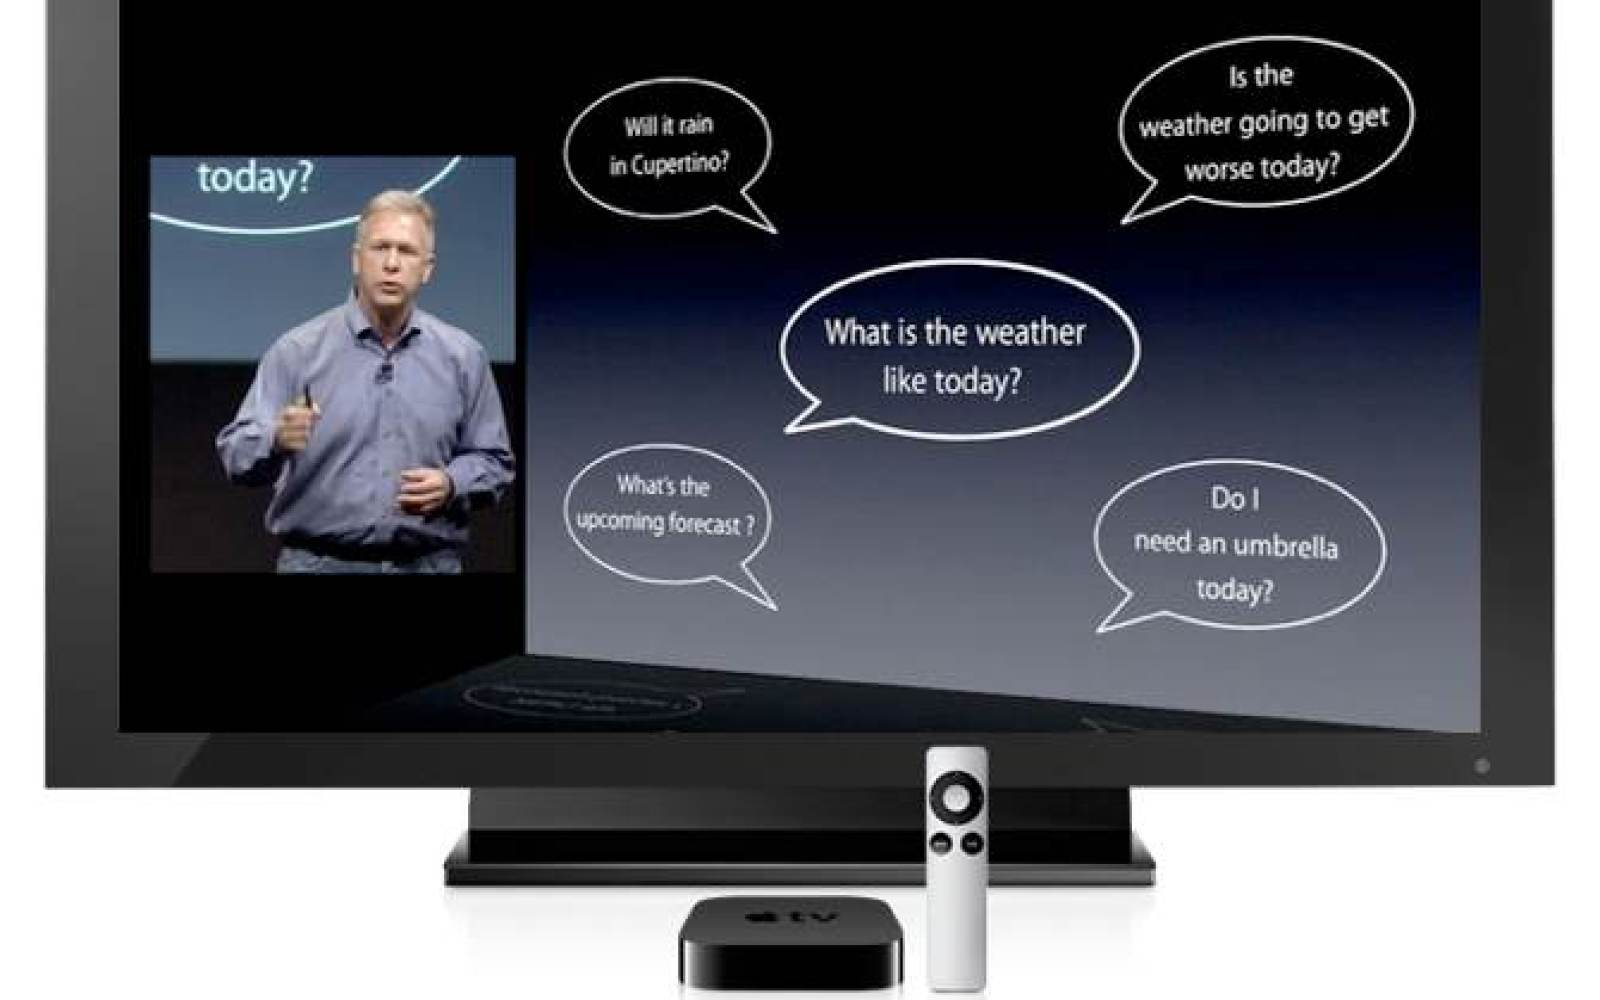 Digitimes says Apple is working on a 4K TV for either later this year or early next year